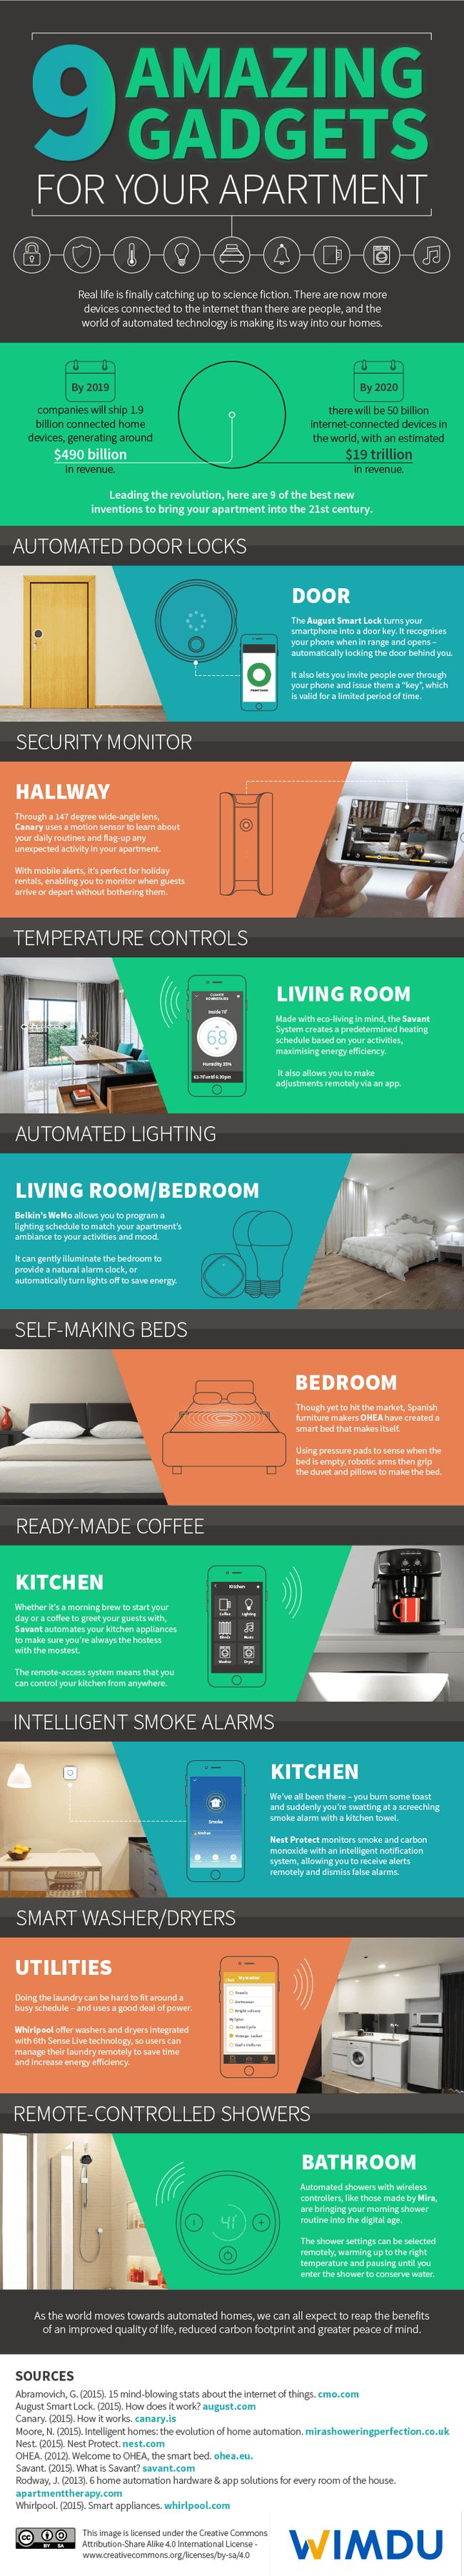 17 best smart home images on pinterest smart home technology iot 9 sciox Choice Image